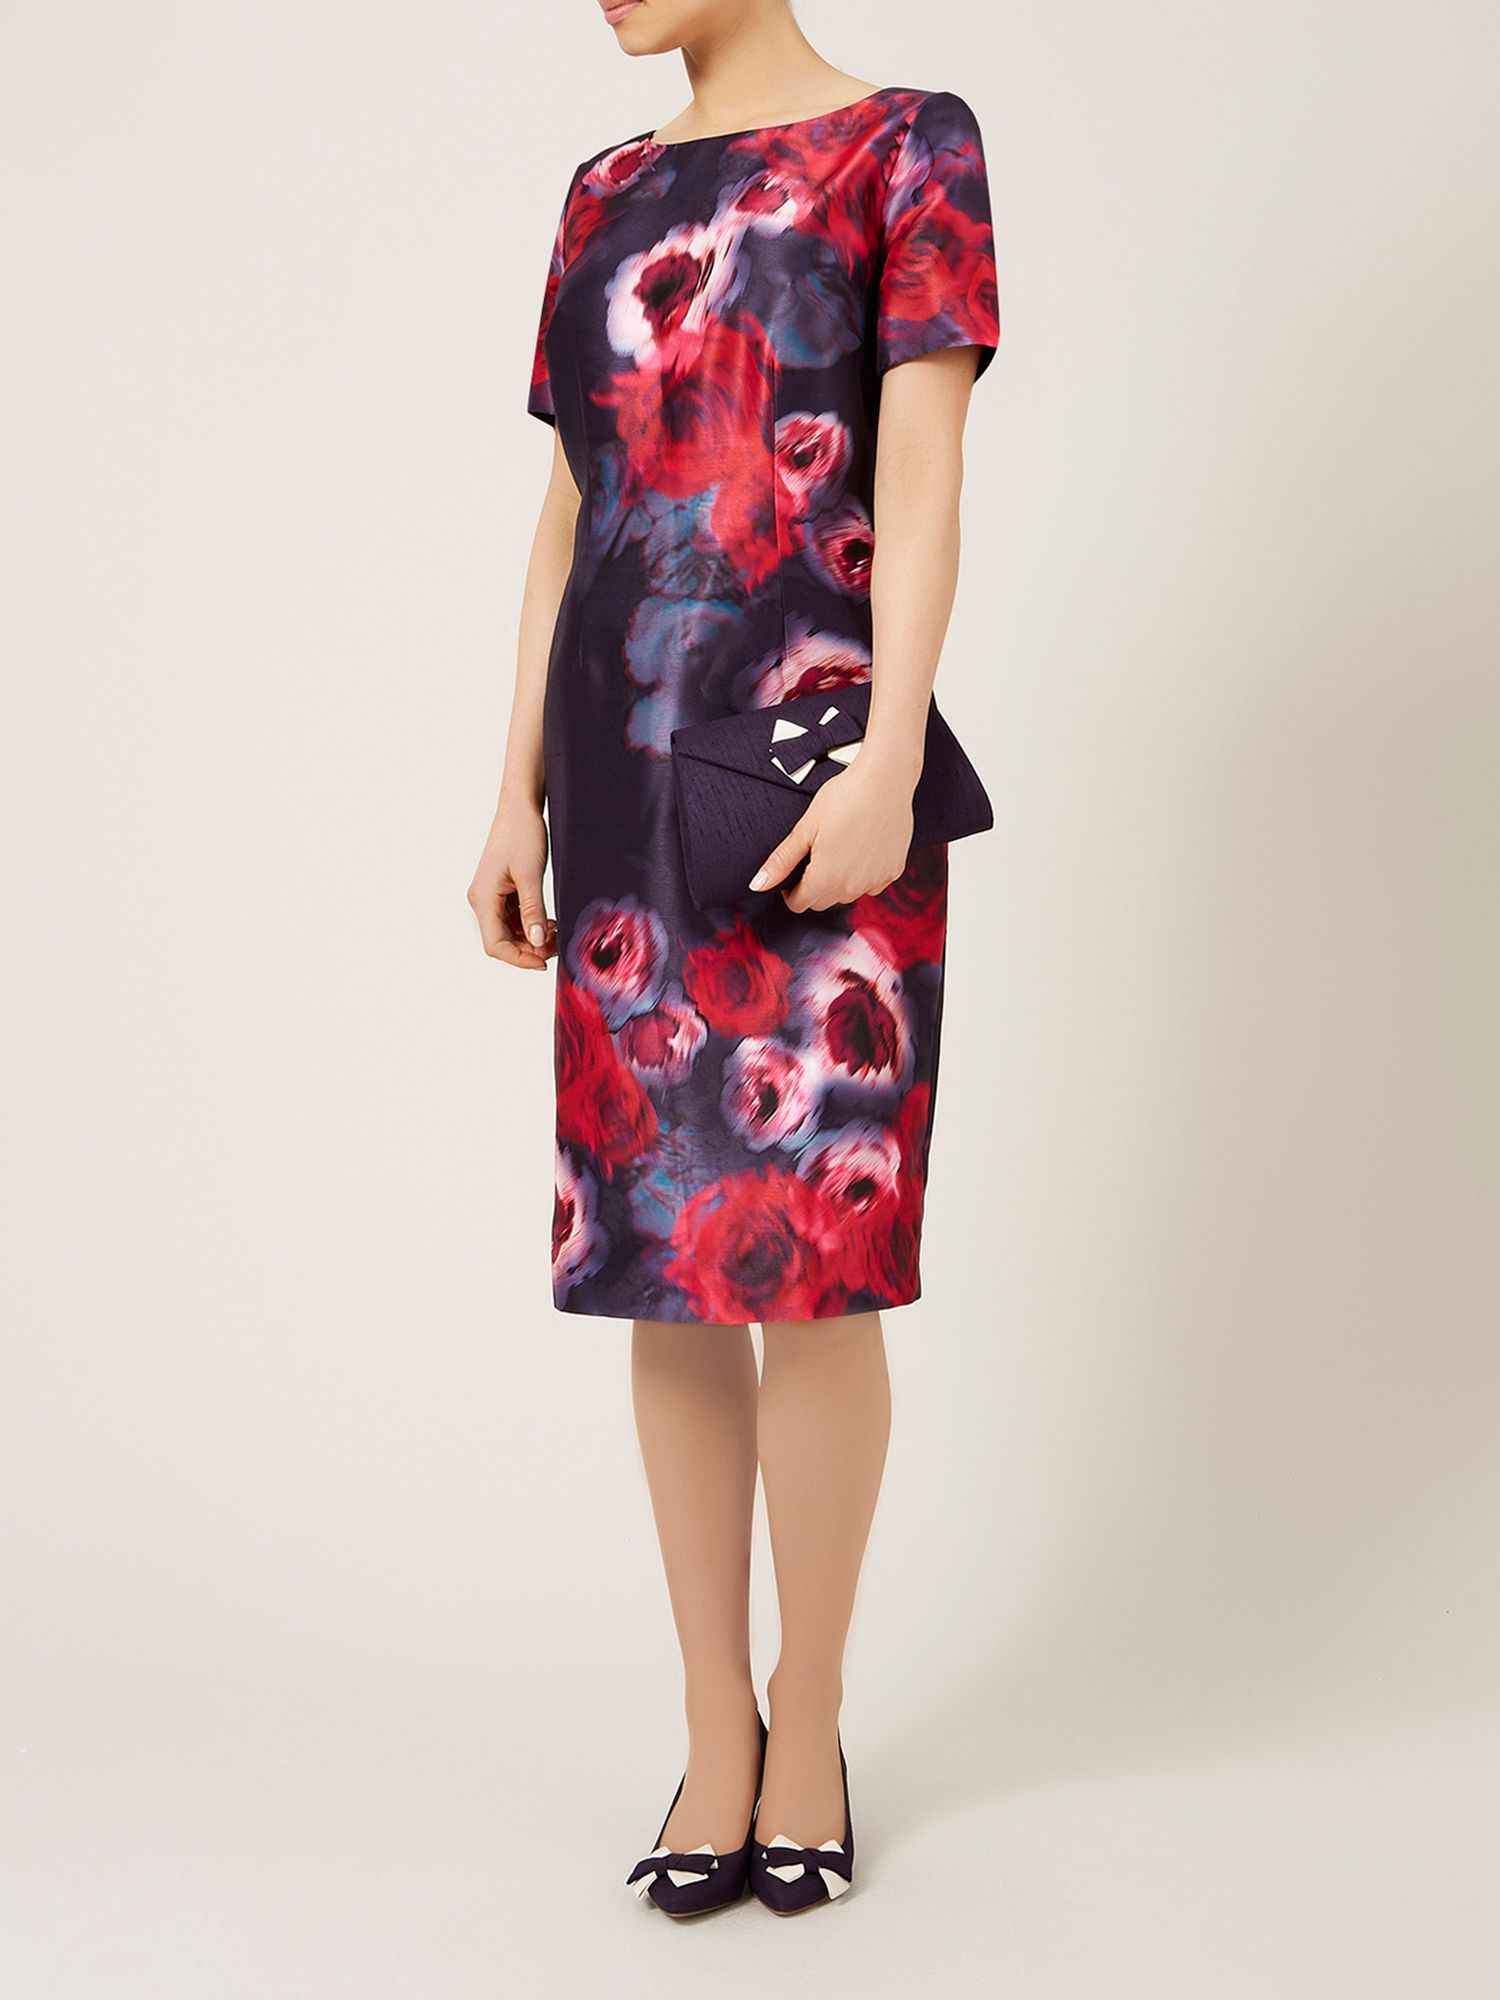 Placement print rose dress